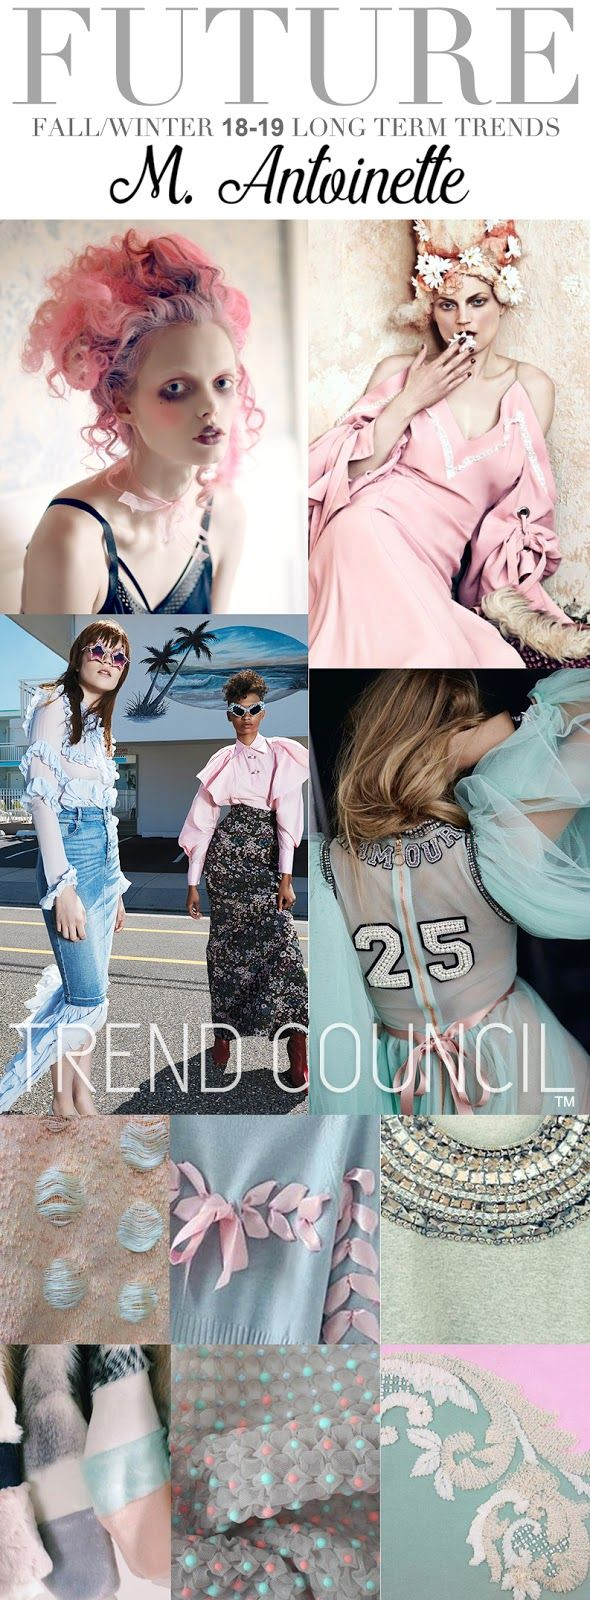 https://fashionvignette.blogspot.ru/2016/12/trends-trend-council-m-antoinette-fw.html?utm_source=feedburner